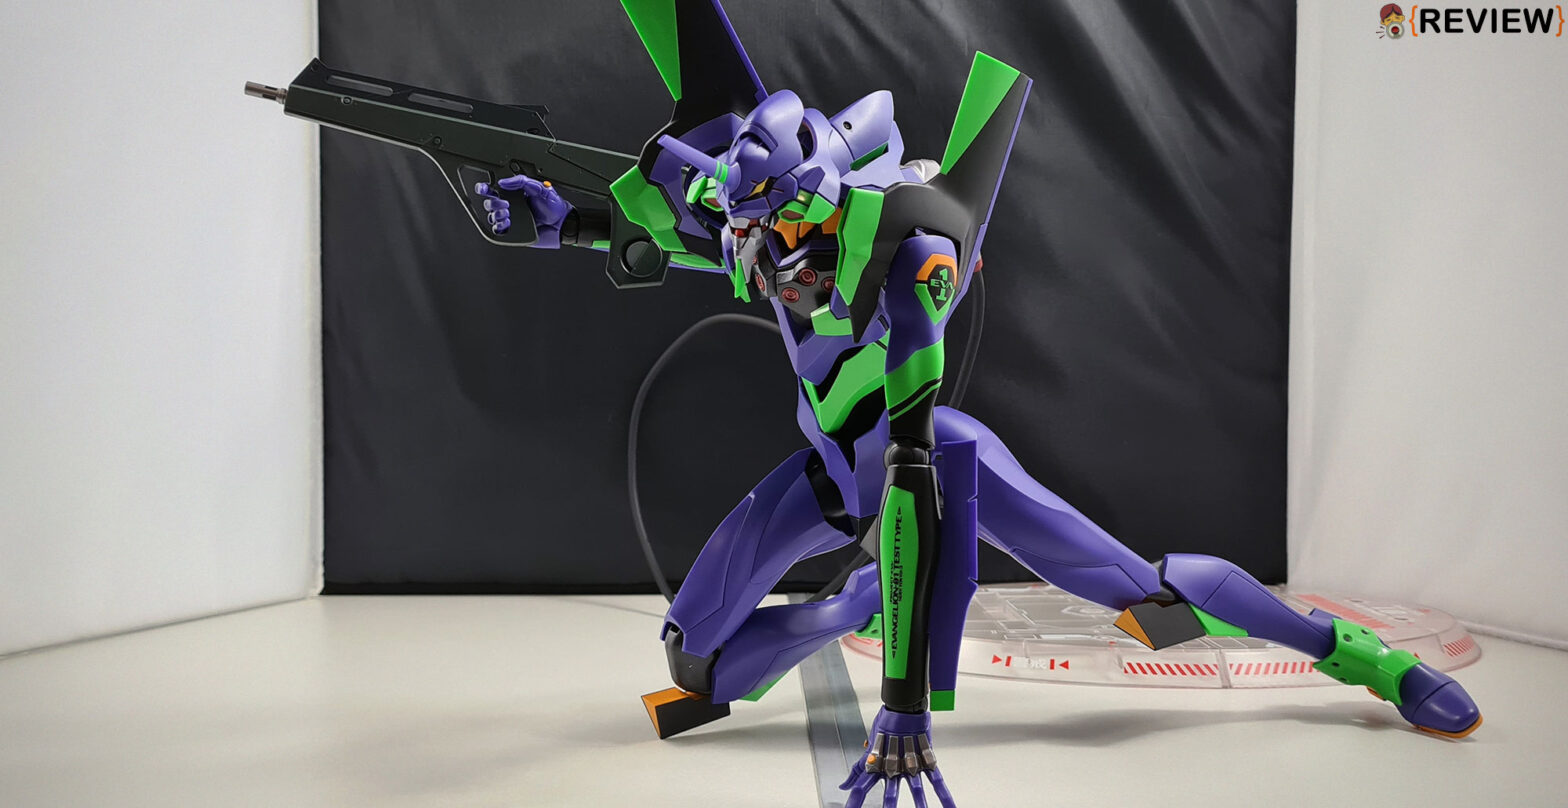 Bandai Dynaction Evangelion Unit-01 Figure Review